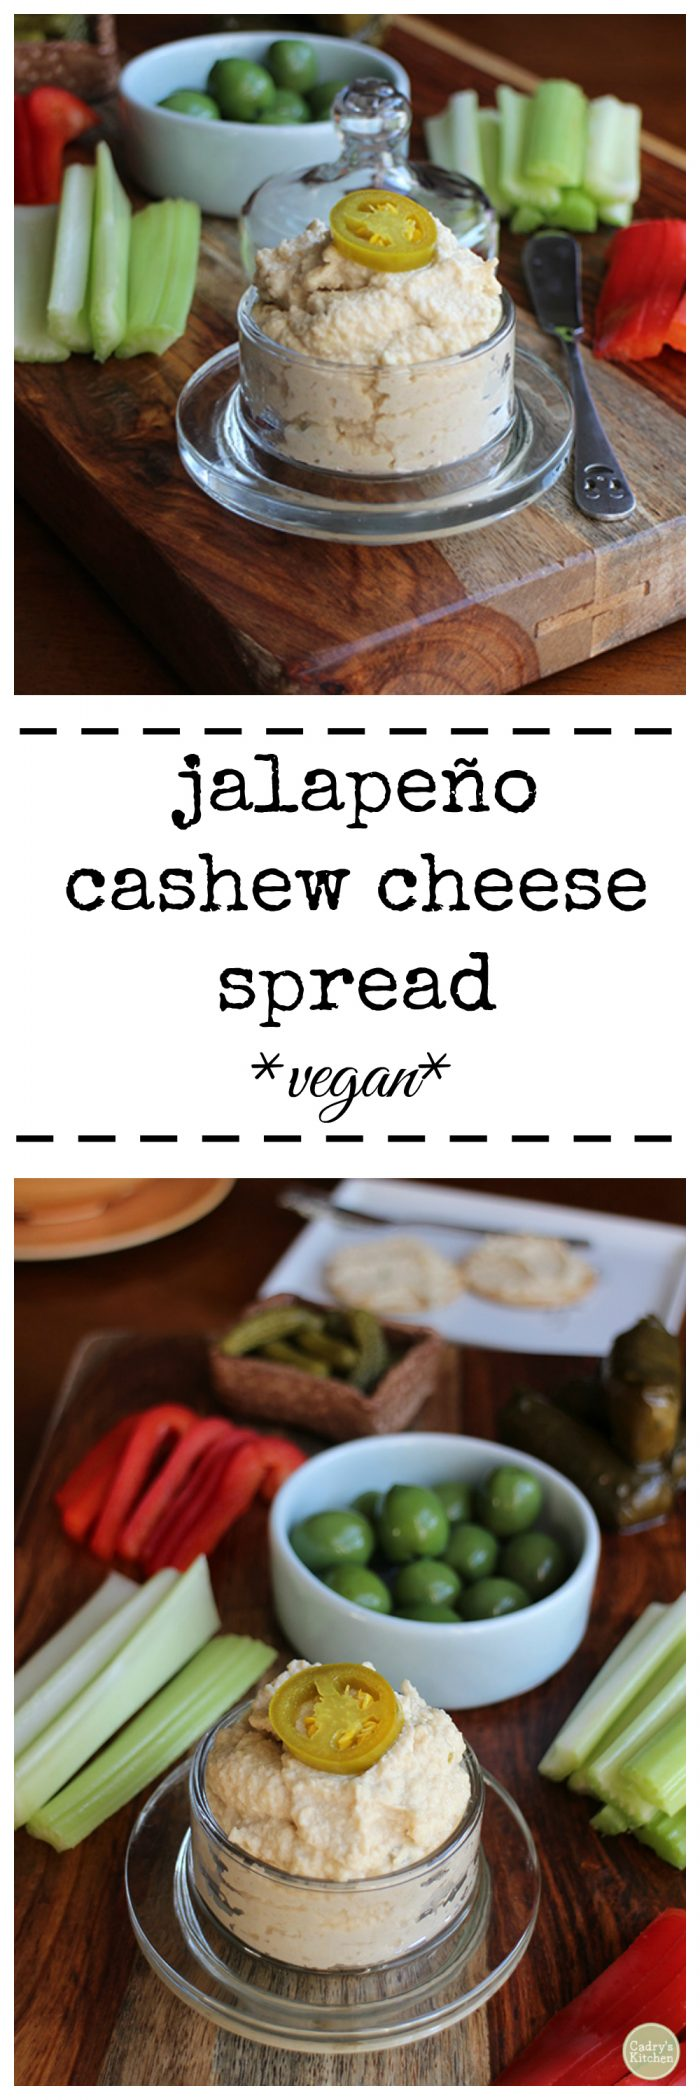 Jalapeno cashew cheese spread. With a base of raw cashews, this spread snaps with the flavor of pickled jalapeños. Vegan. Dairy free. | cadryskitchen.com